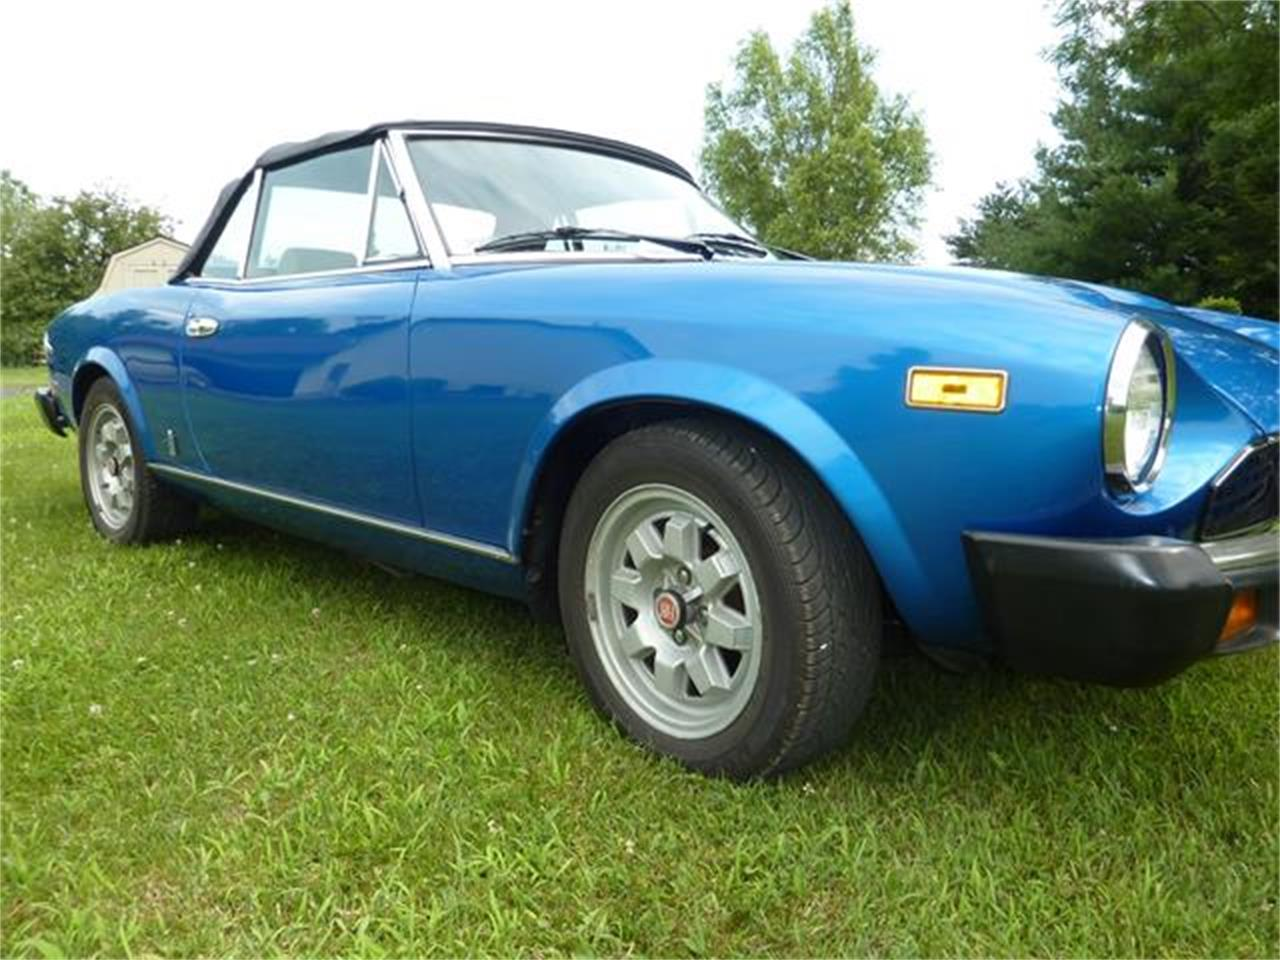 1980 Fiat 124 for sale in Mount Gilead, OH – photo 26